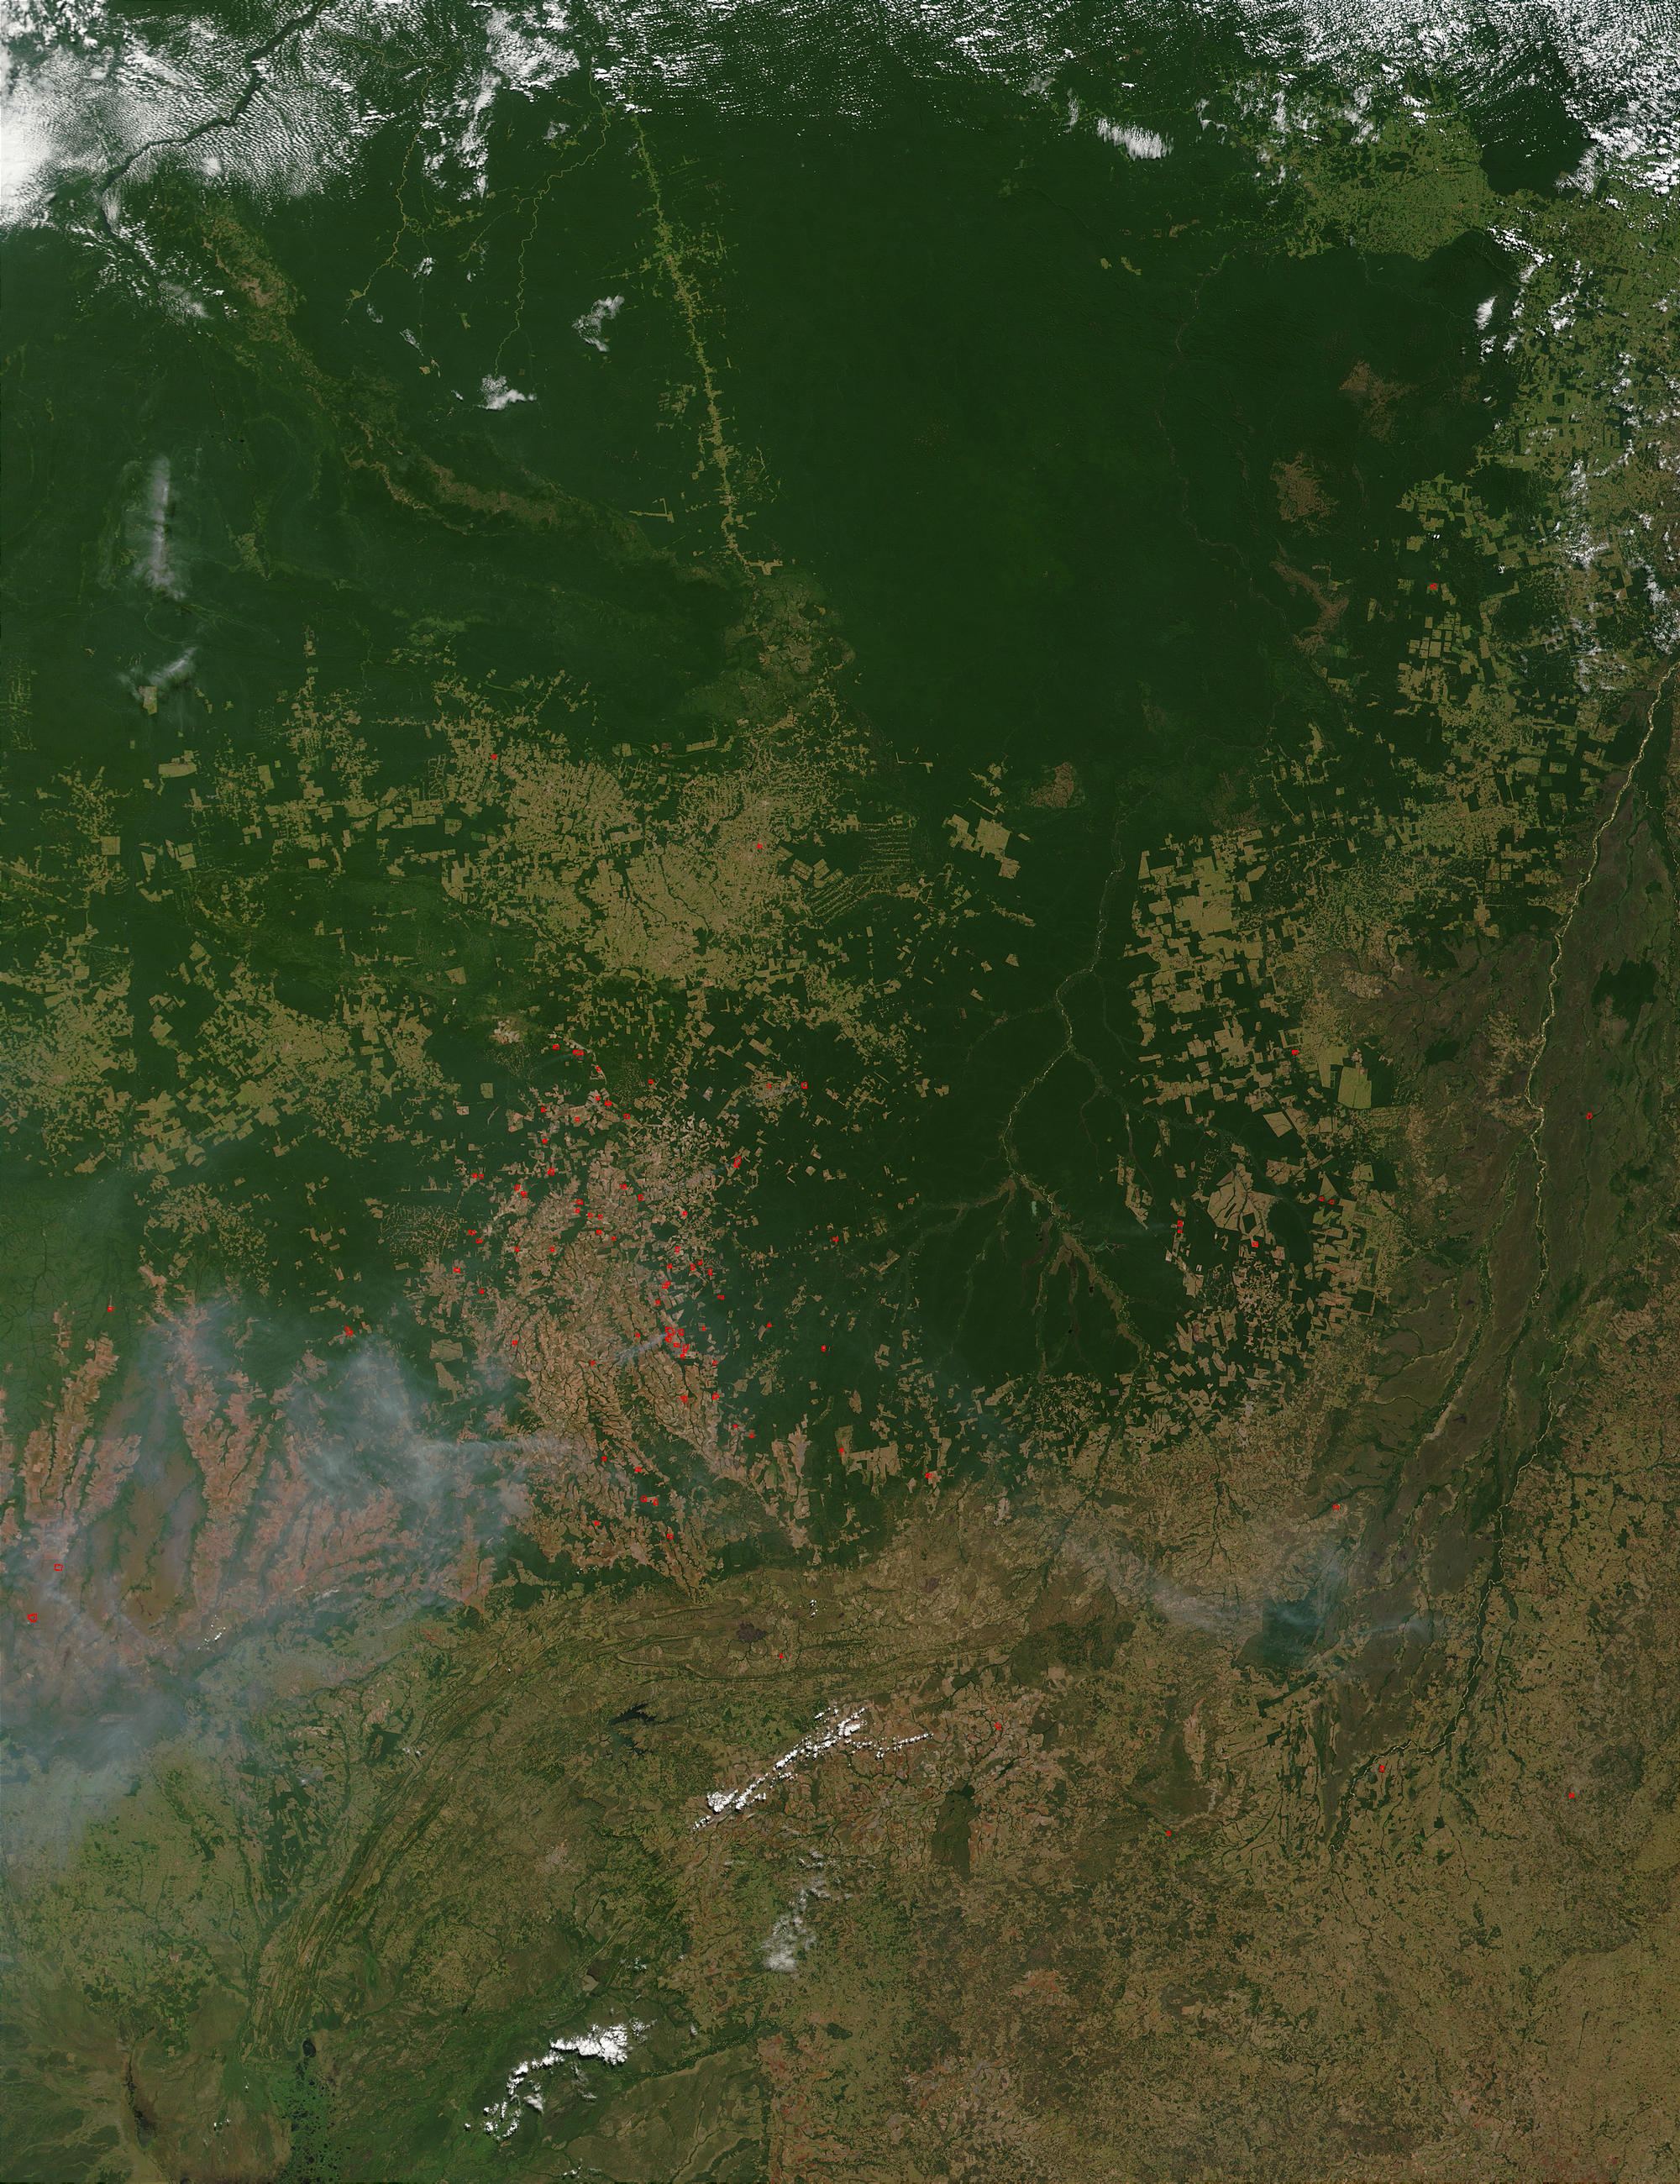 Fires and smoke in Mato Grosso, Brazil - related image preview